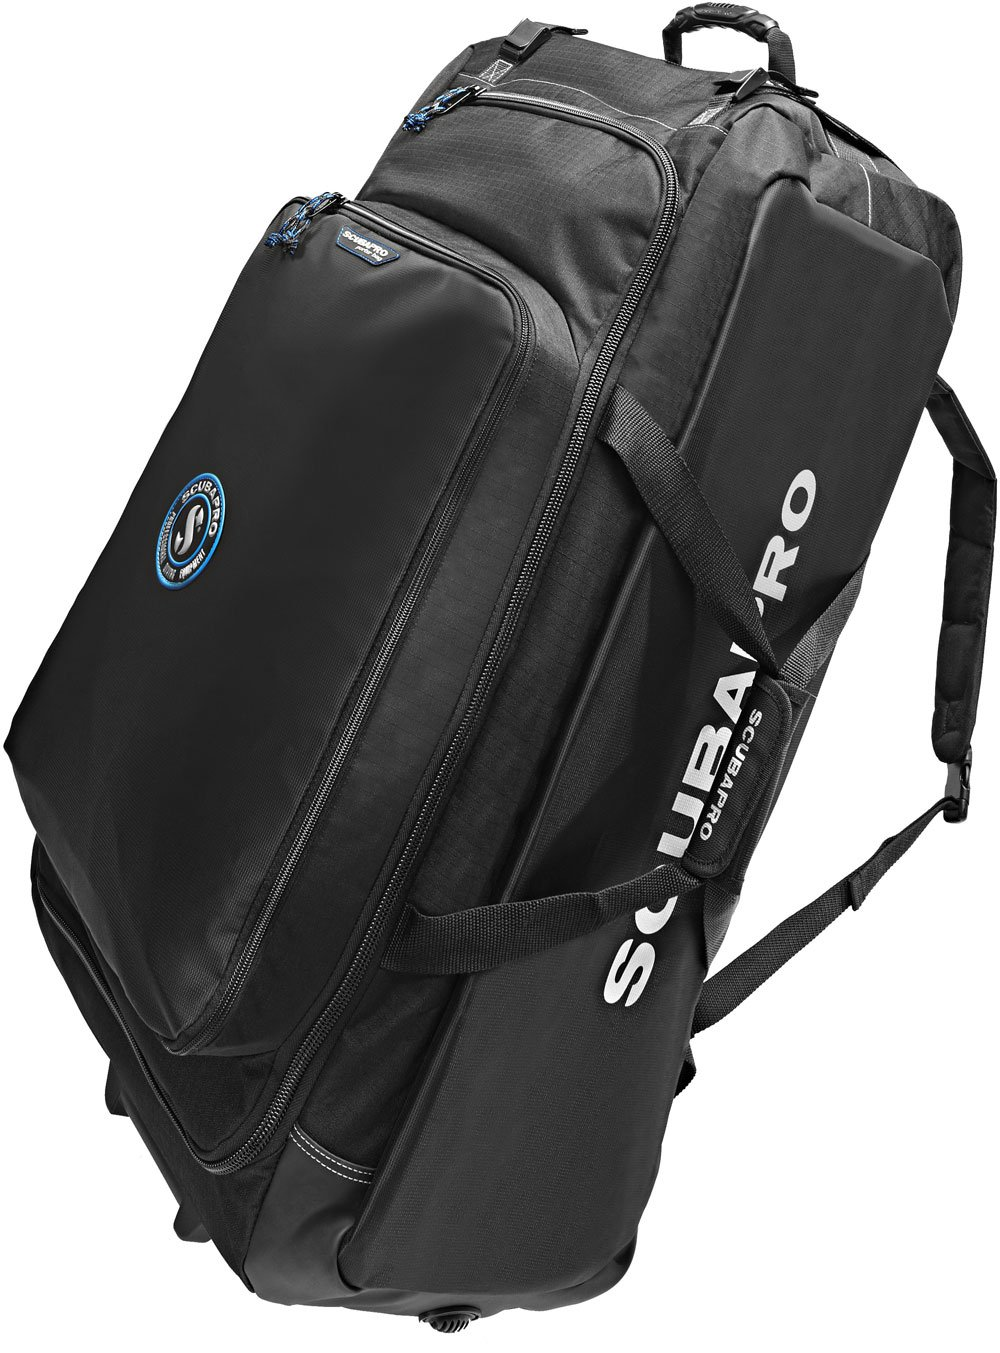 Scubapro Porter Scuba Gear Bag for Scuba Diving or Snorkeling